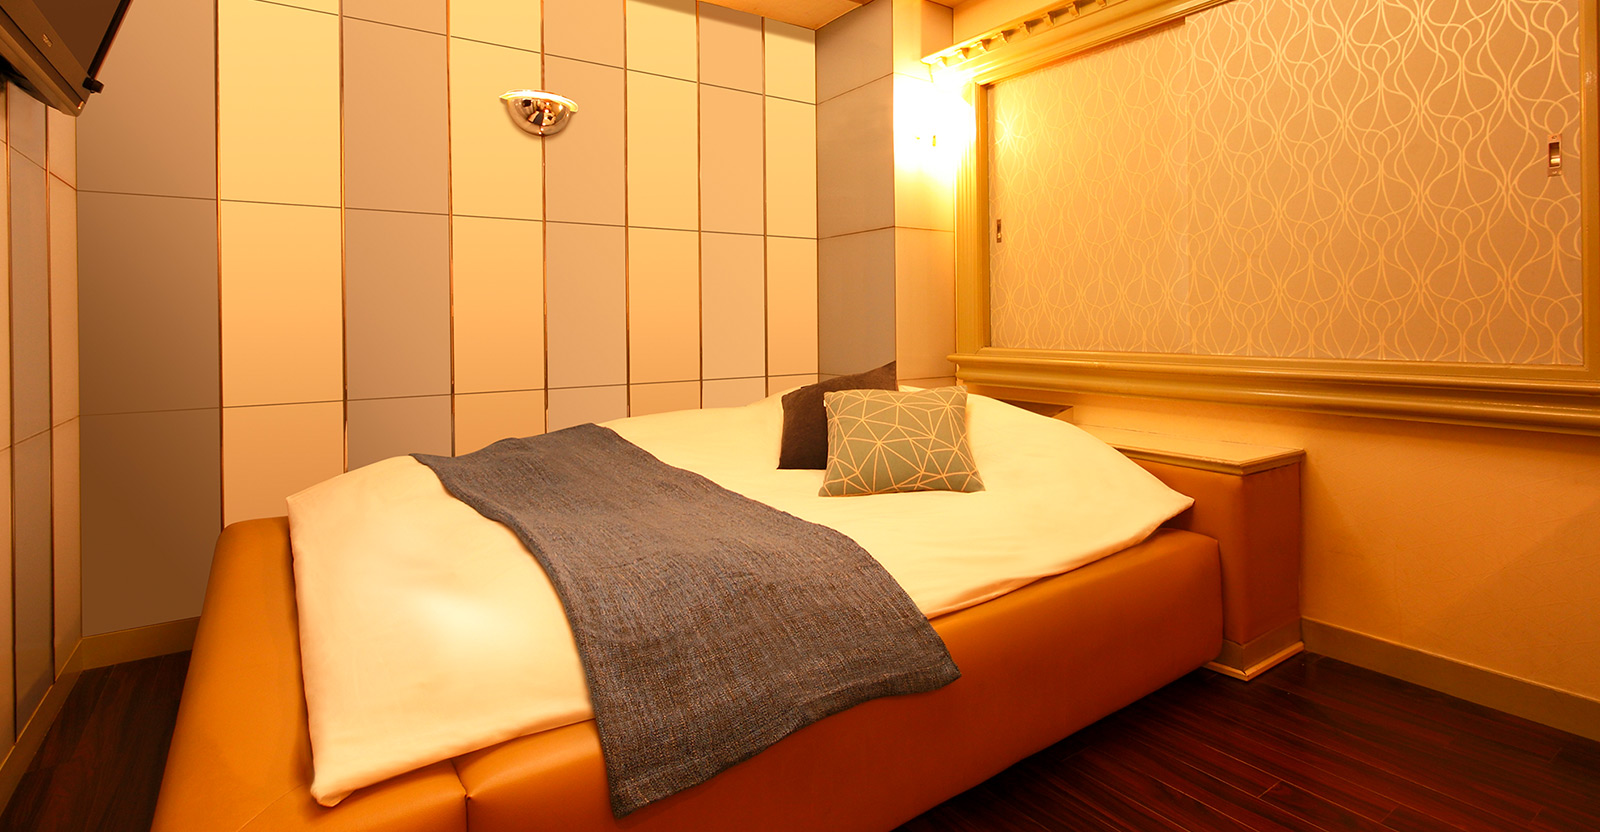 Rates | Room types | Hotel Smile rest / accommodation rates